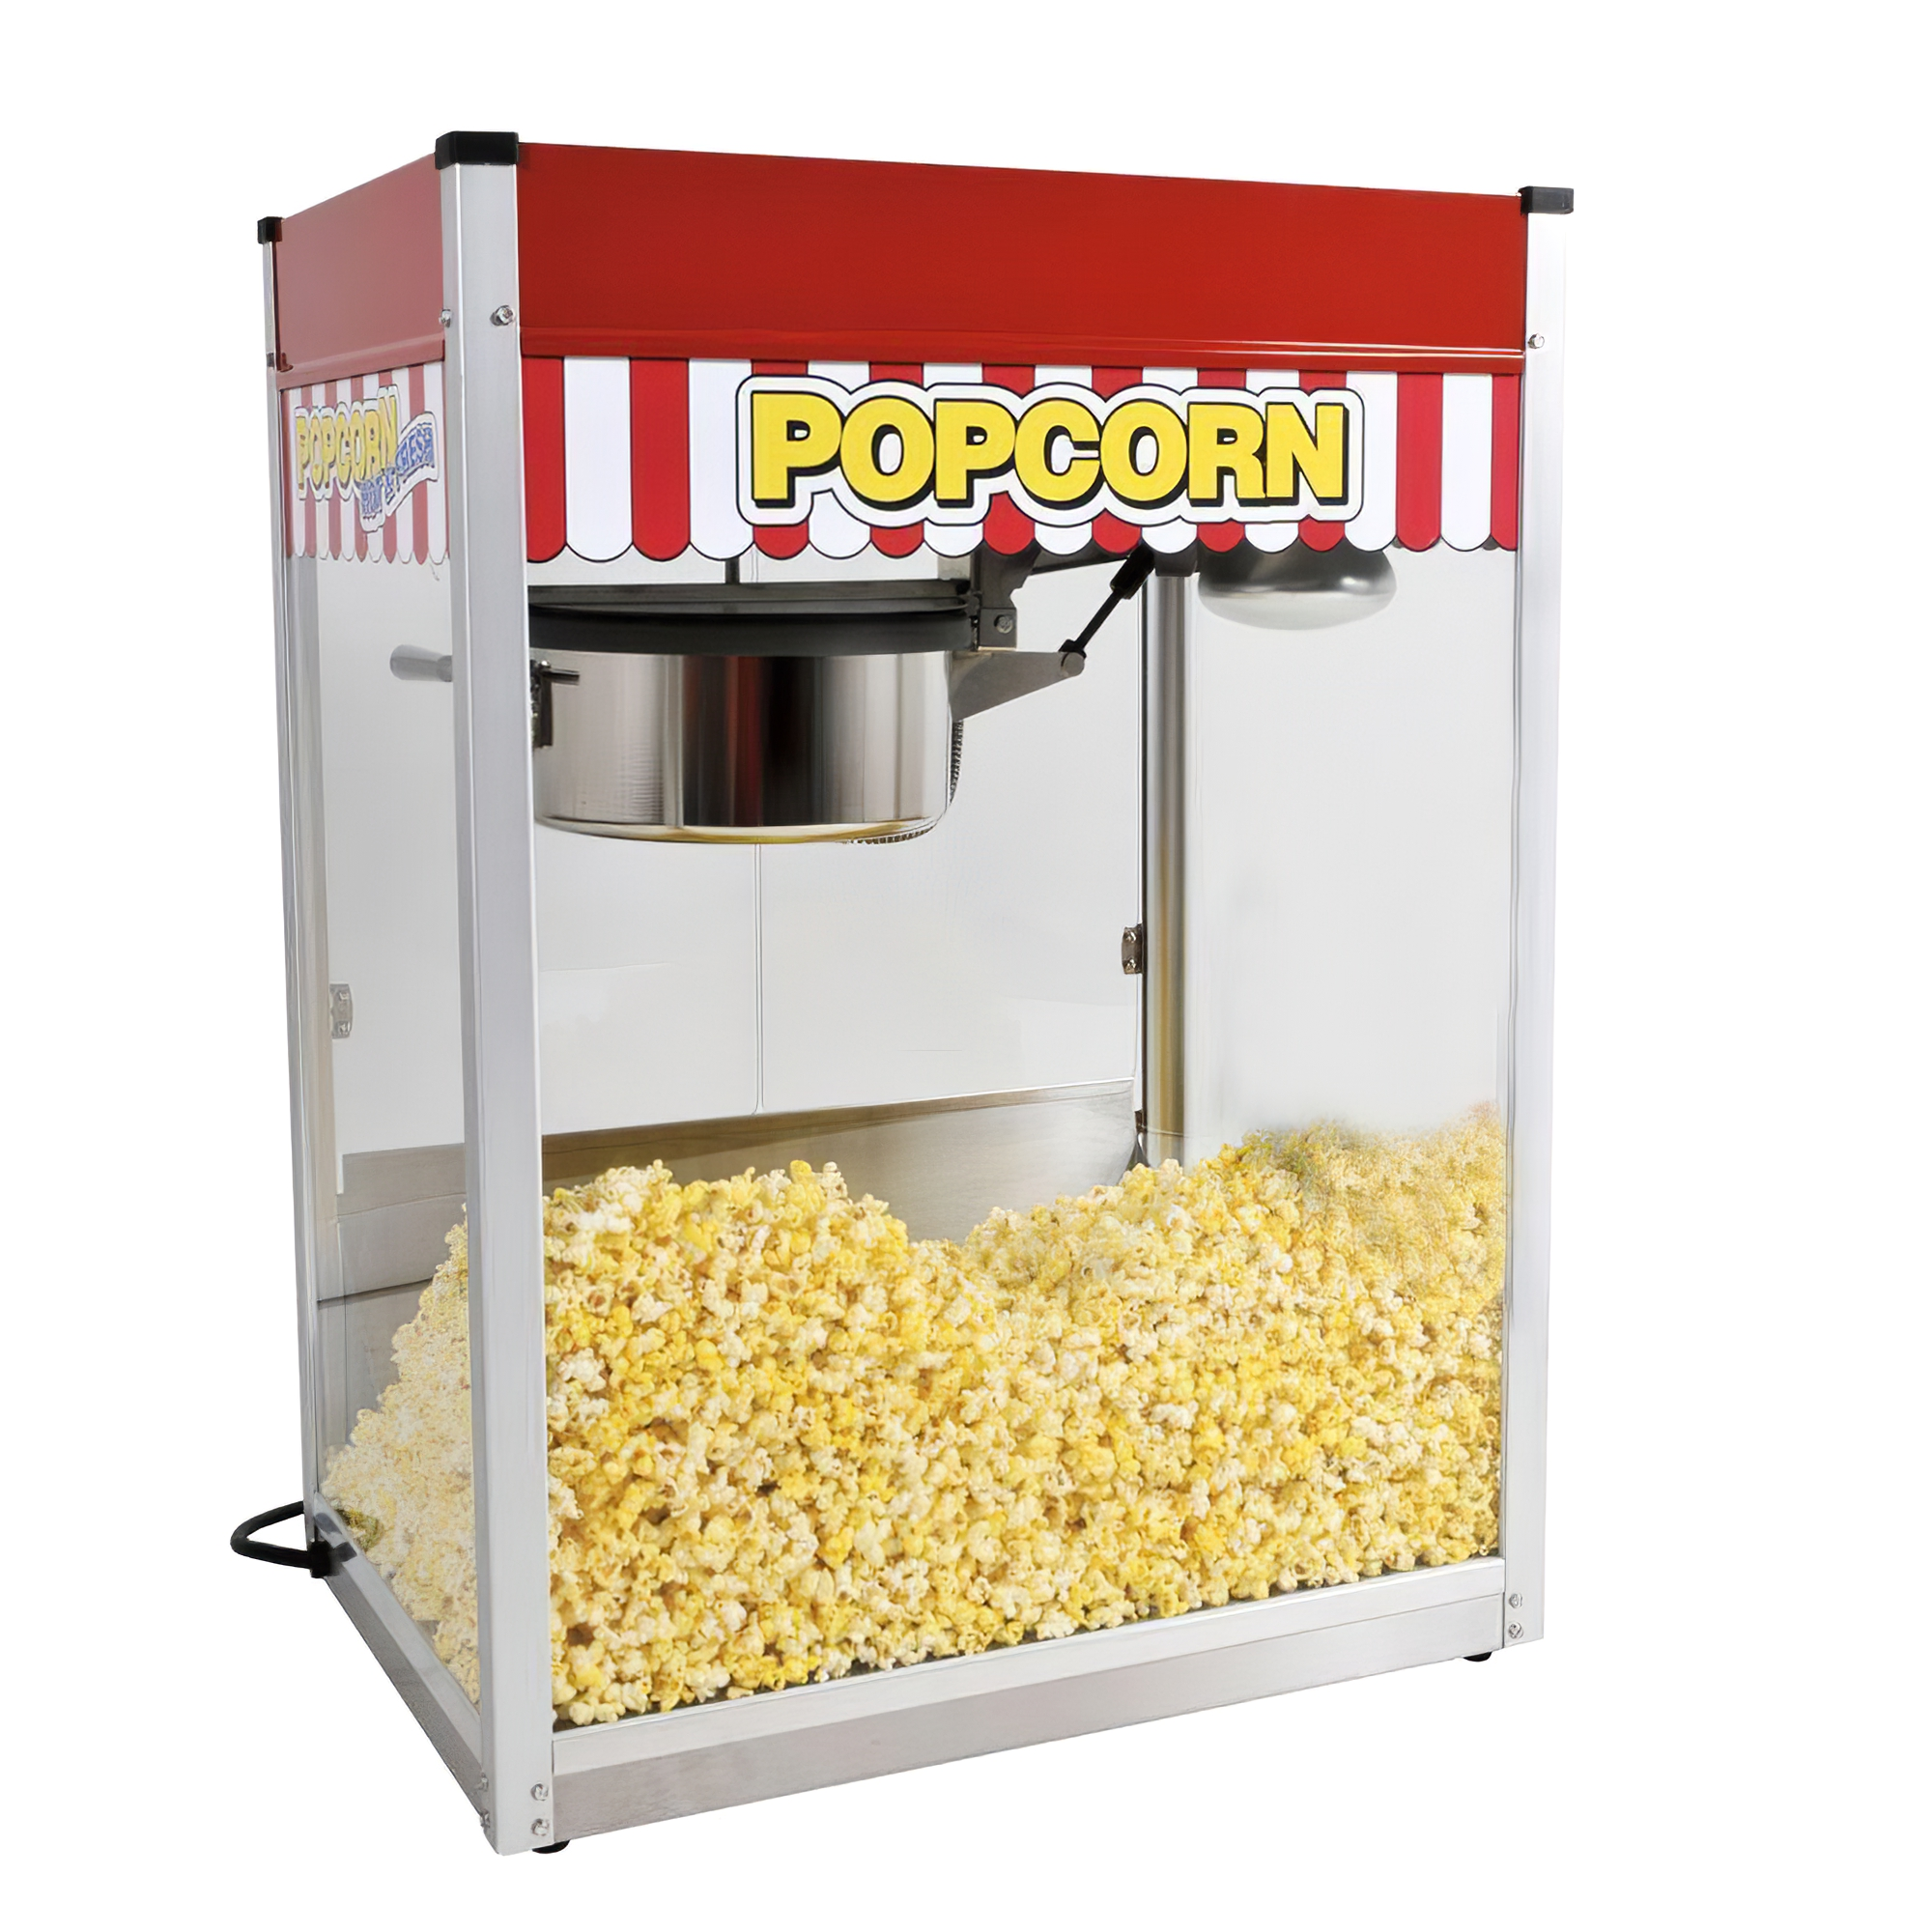 red and stainless steel paragon popcorn machines 1116810 64 1000 edit2